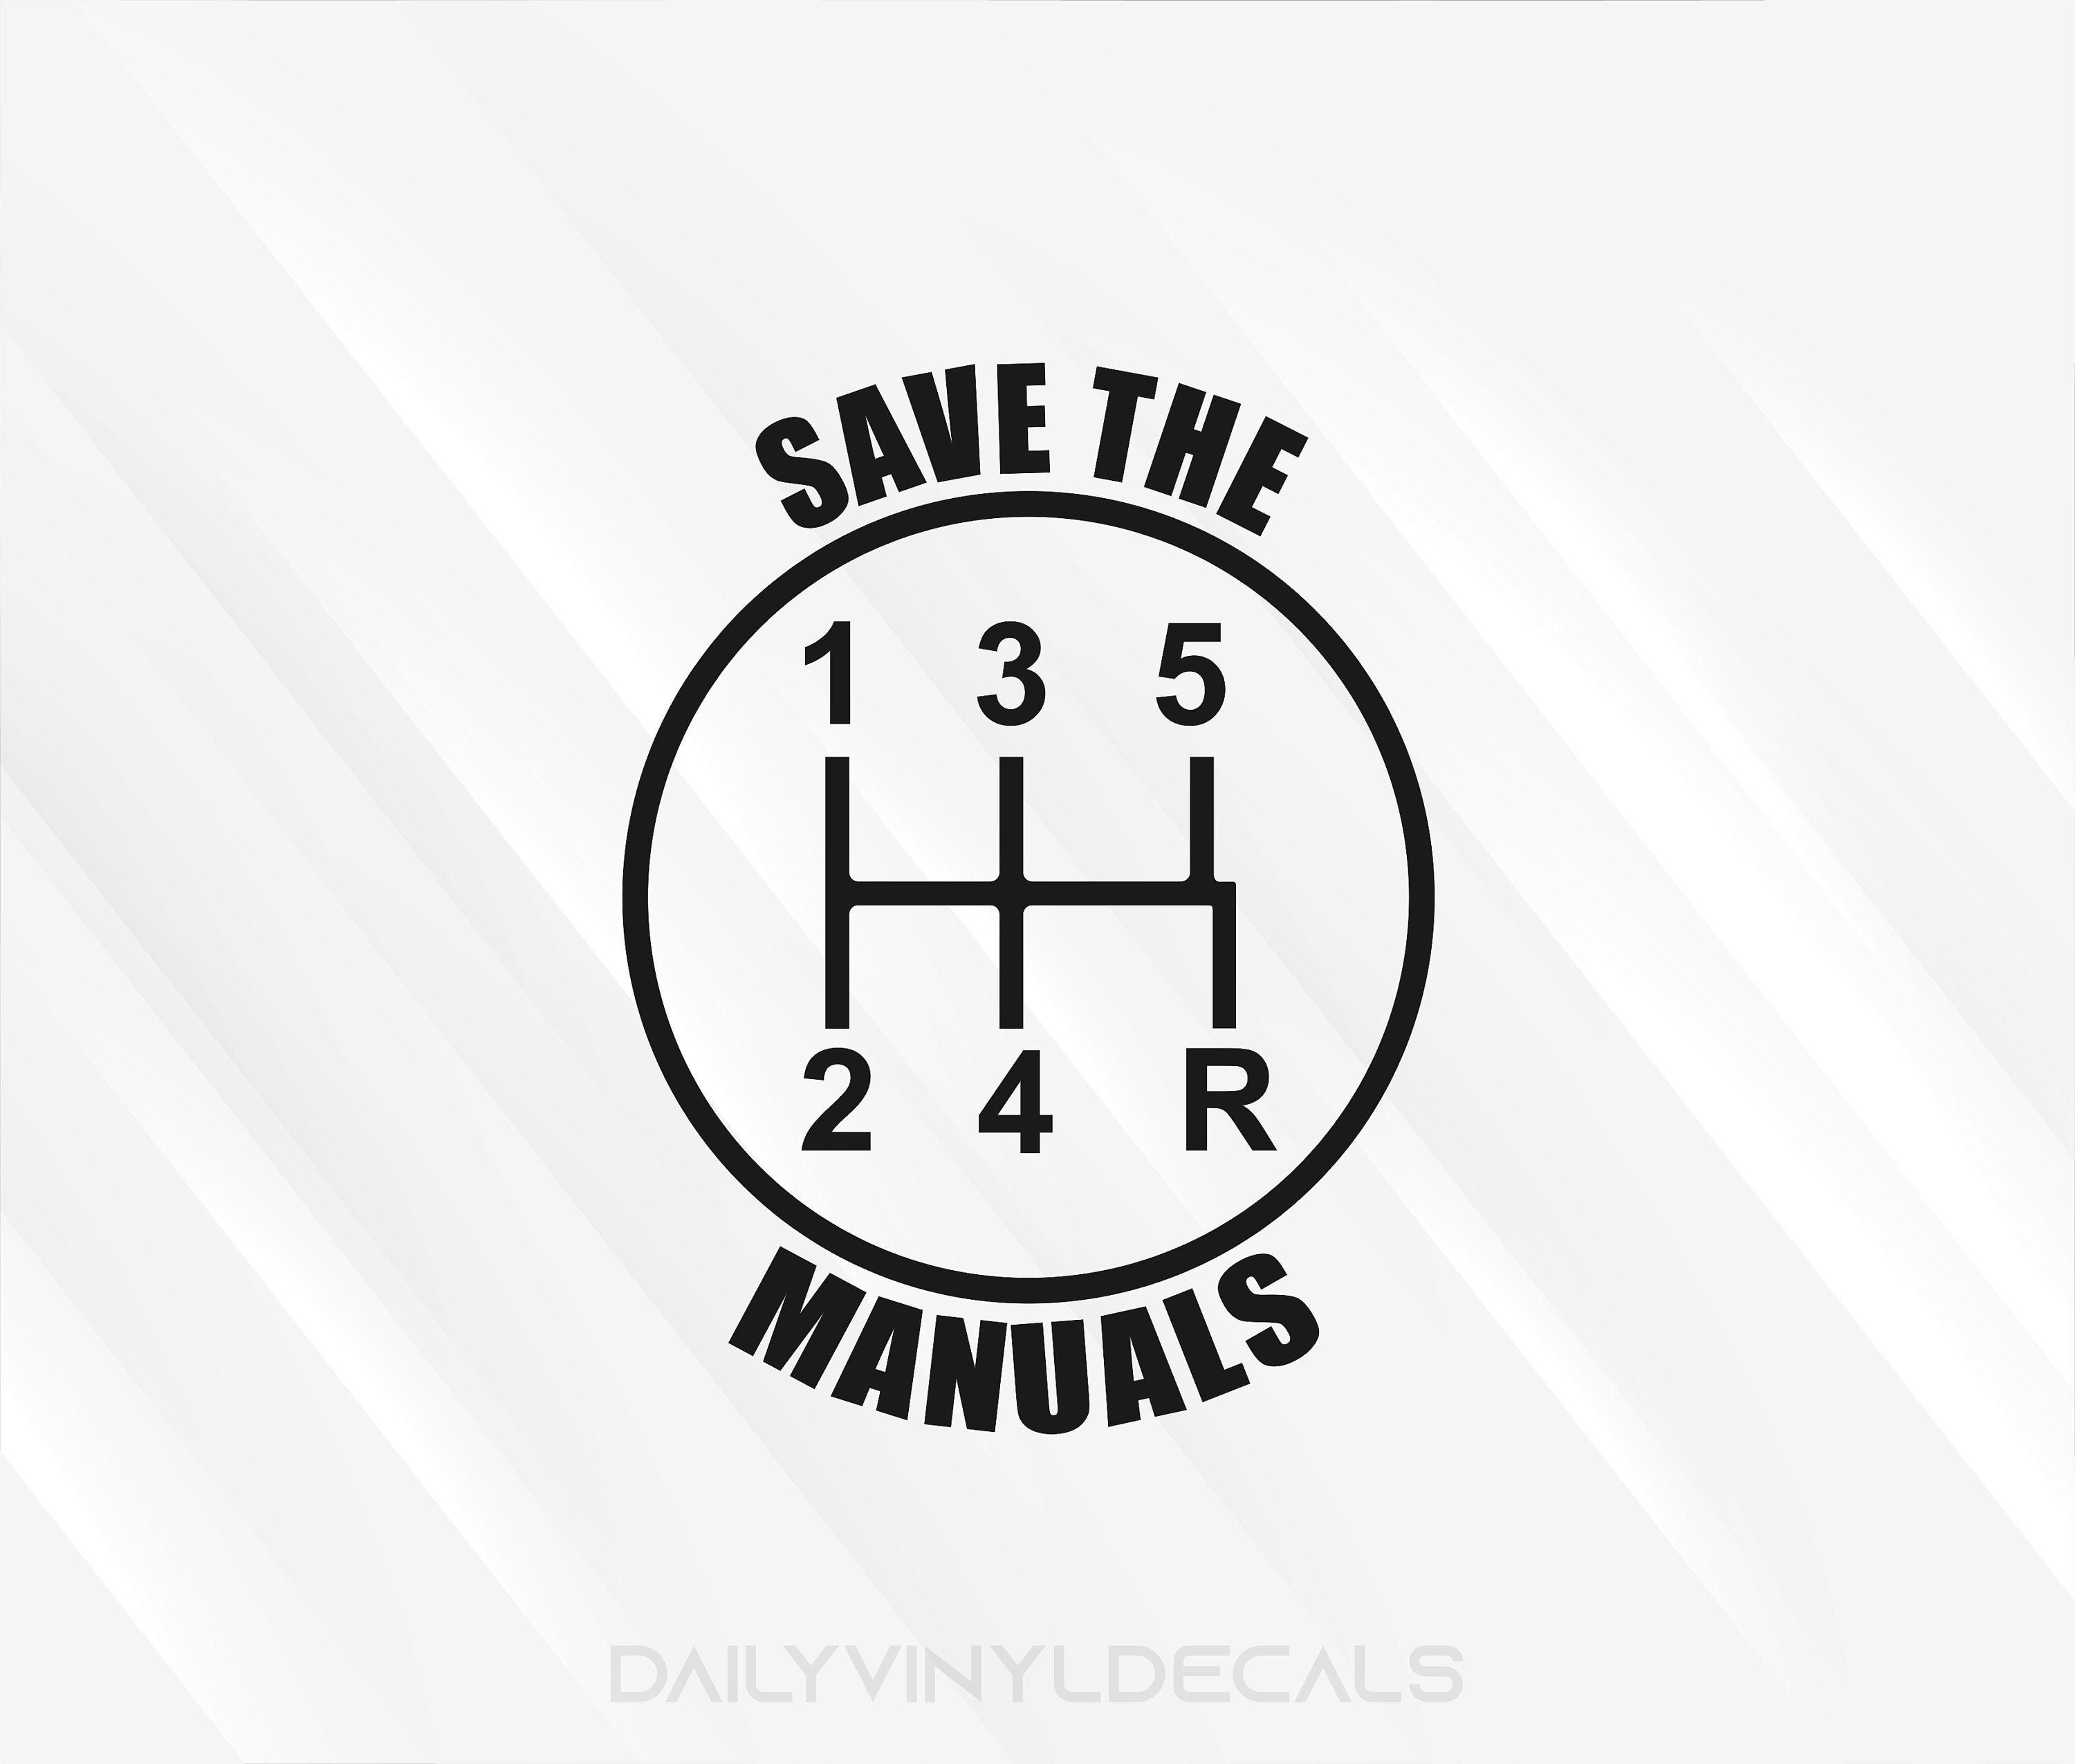 Save the manuals 5 Speed Gear Shift Decal 5 Speed Diagram